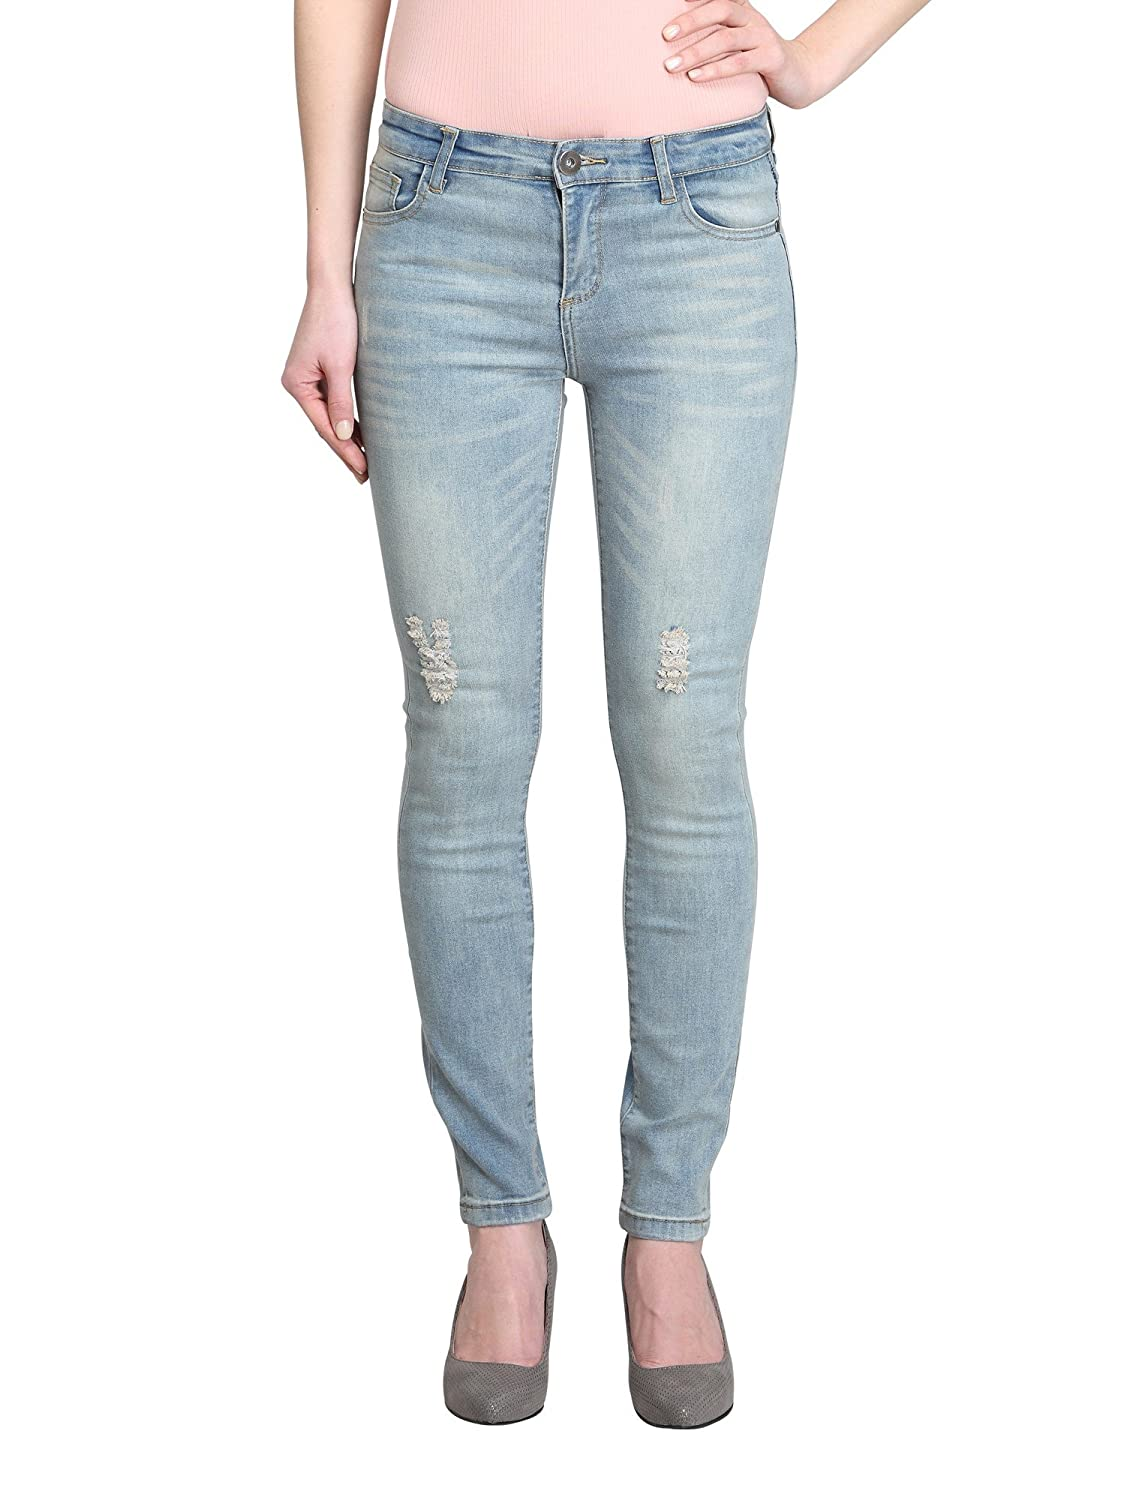 82473edb9 Allee Jeans Women's Distressed Light Blue Mid-Rise Skinny Ankle Jeans  (Zinnia-AK